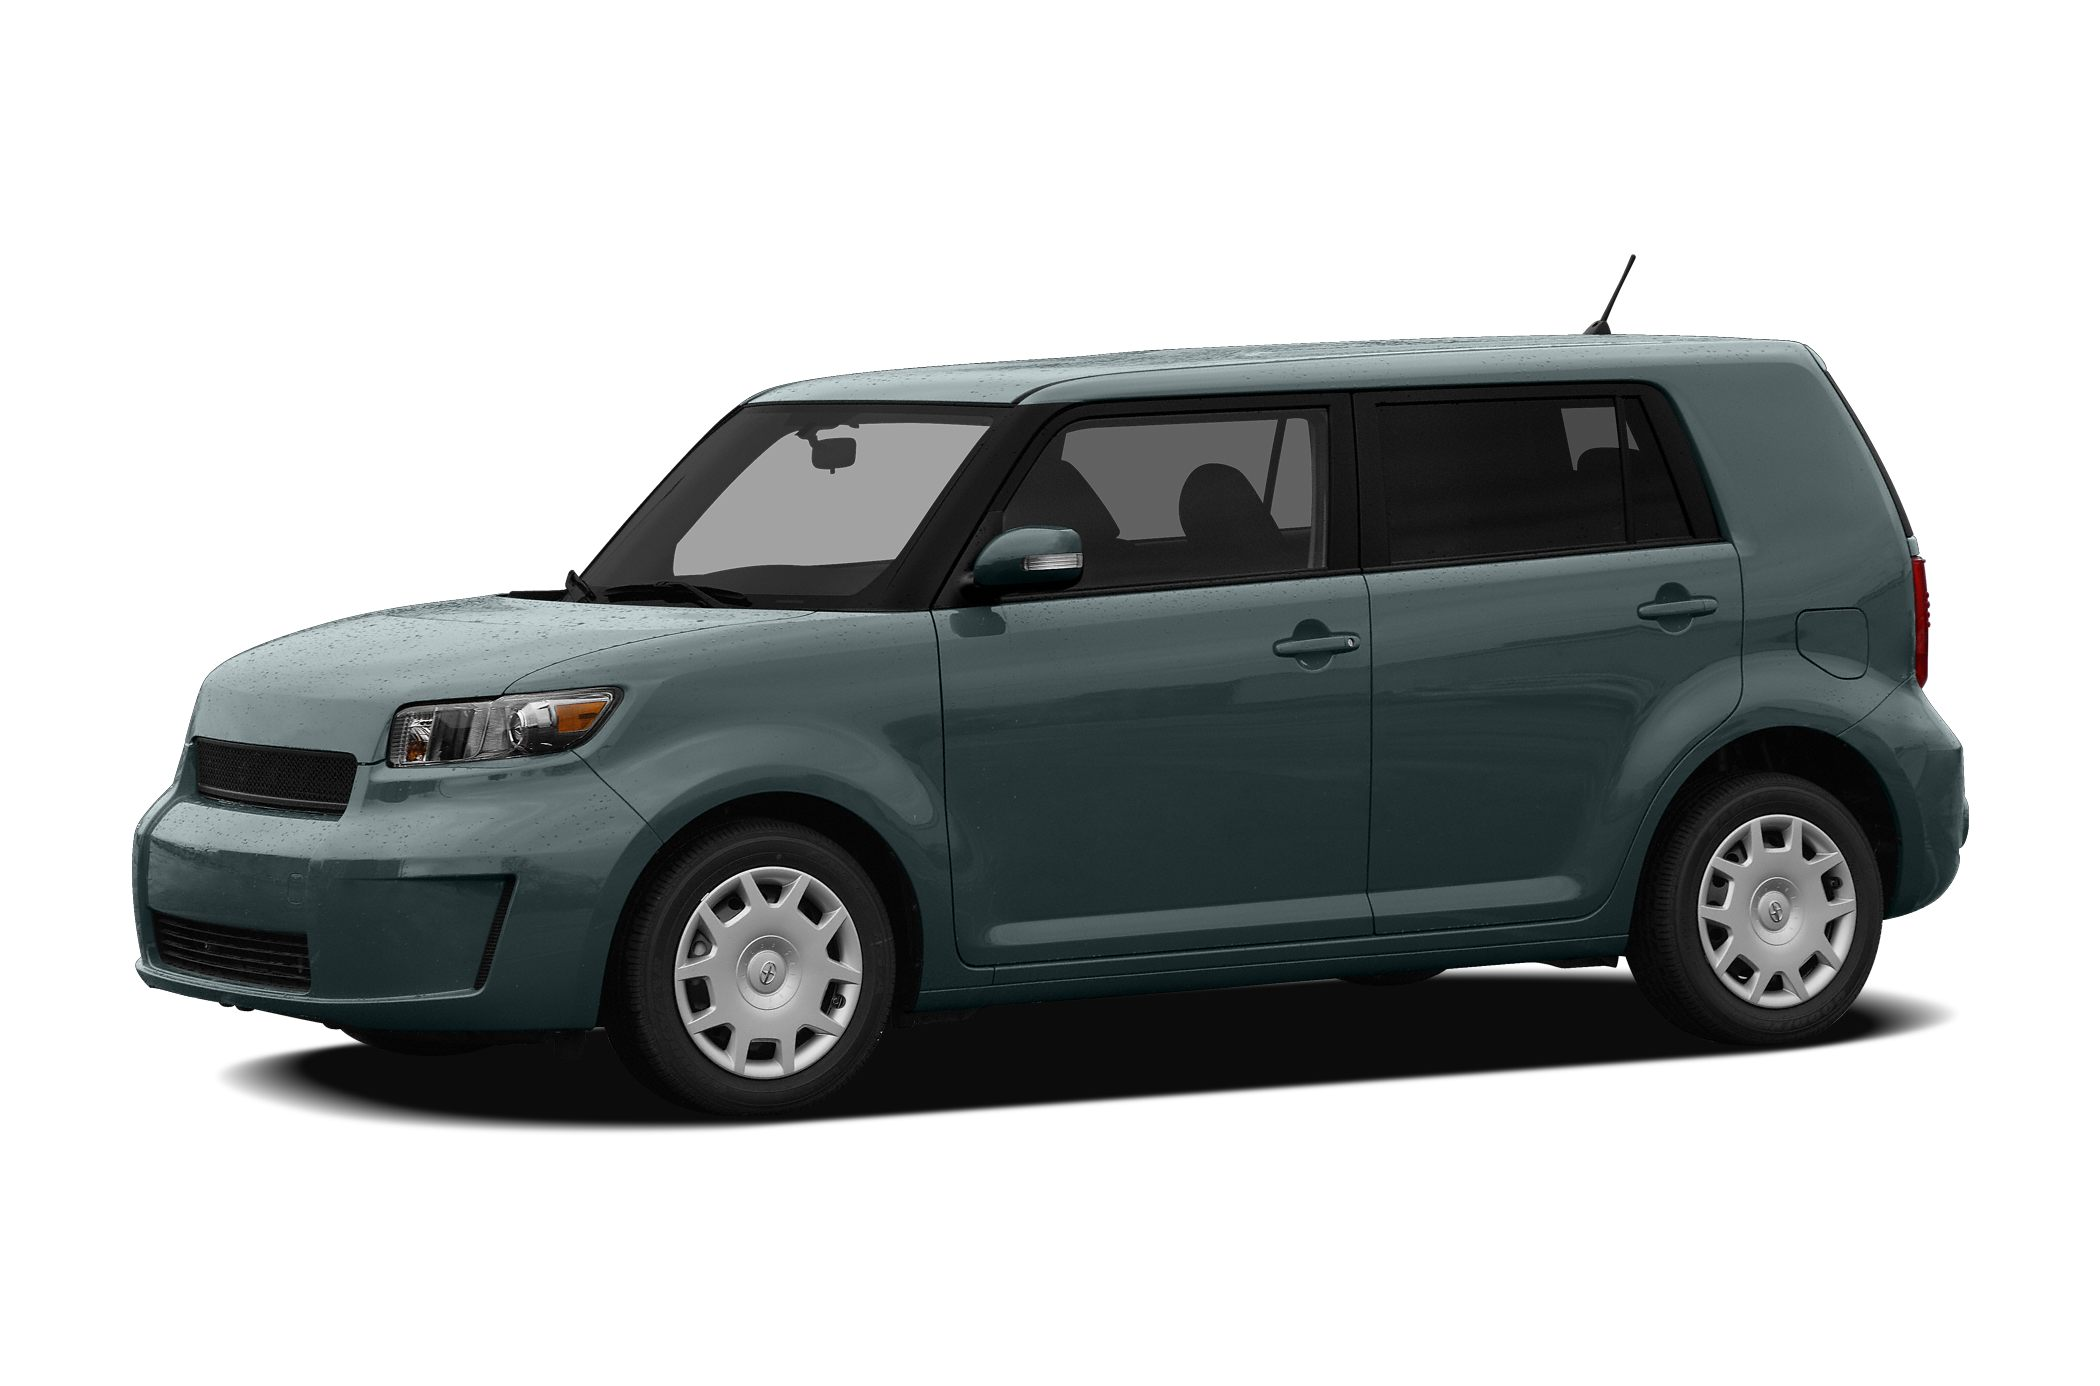 2009 Scion XB Wagon for sale in Fort Myers for $10,621 with 64,512 miles.